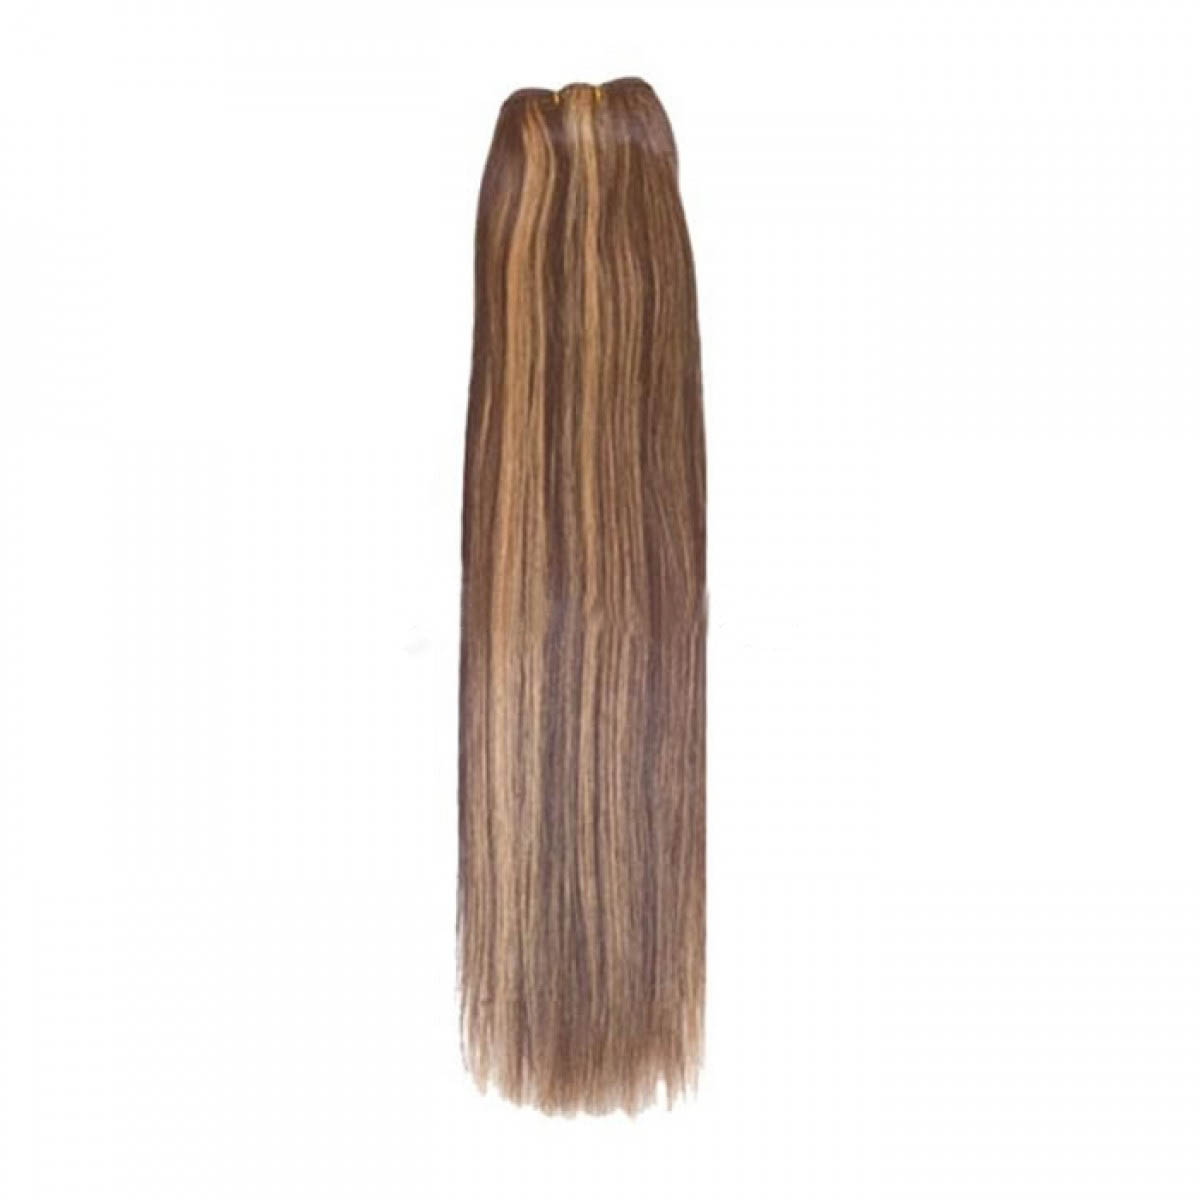 14 Inch #4/27 Brown/Blonde Straight Indian Remy Hair Wefts no 1